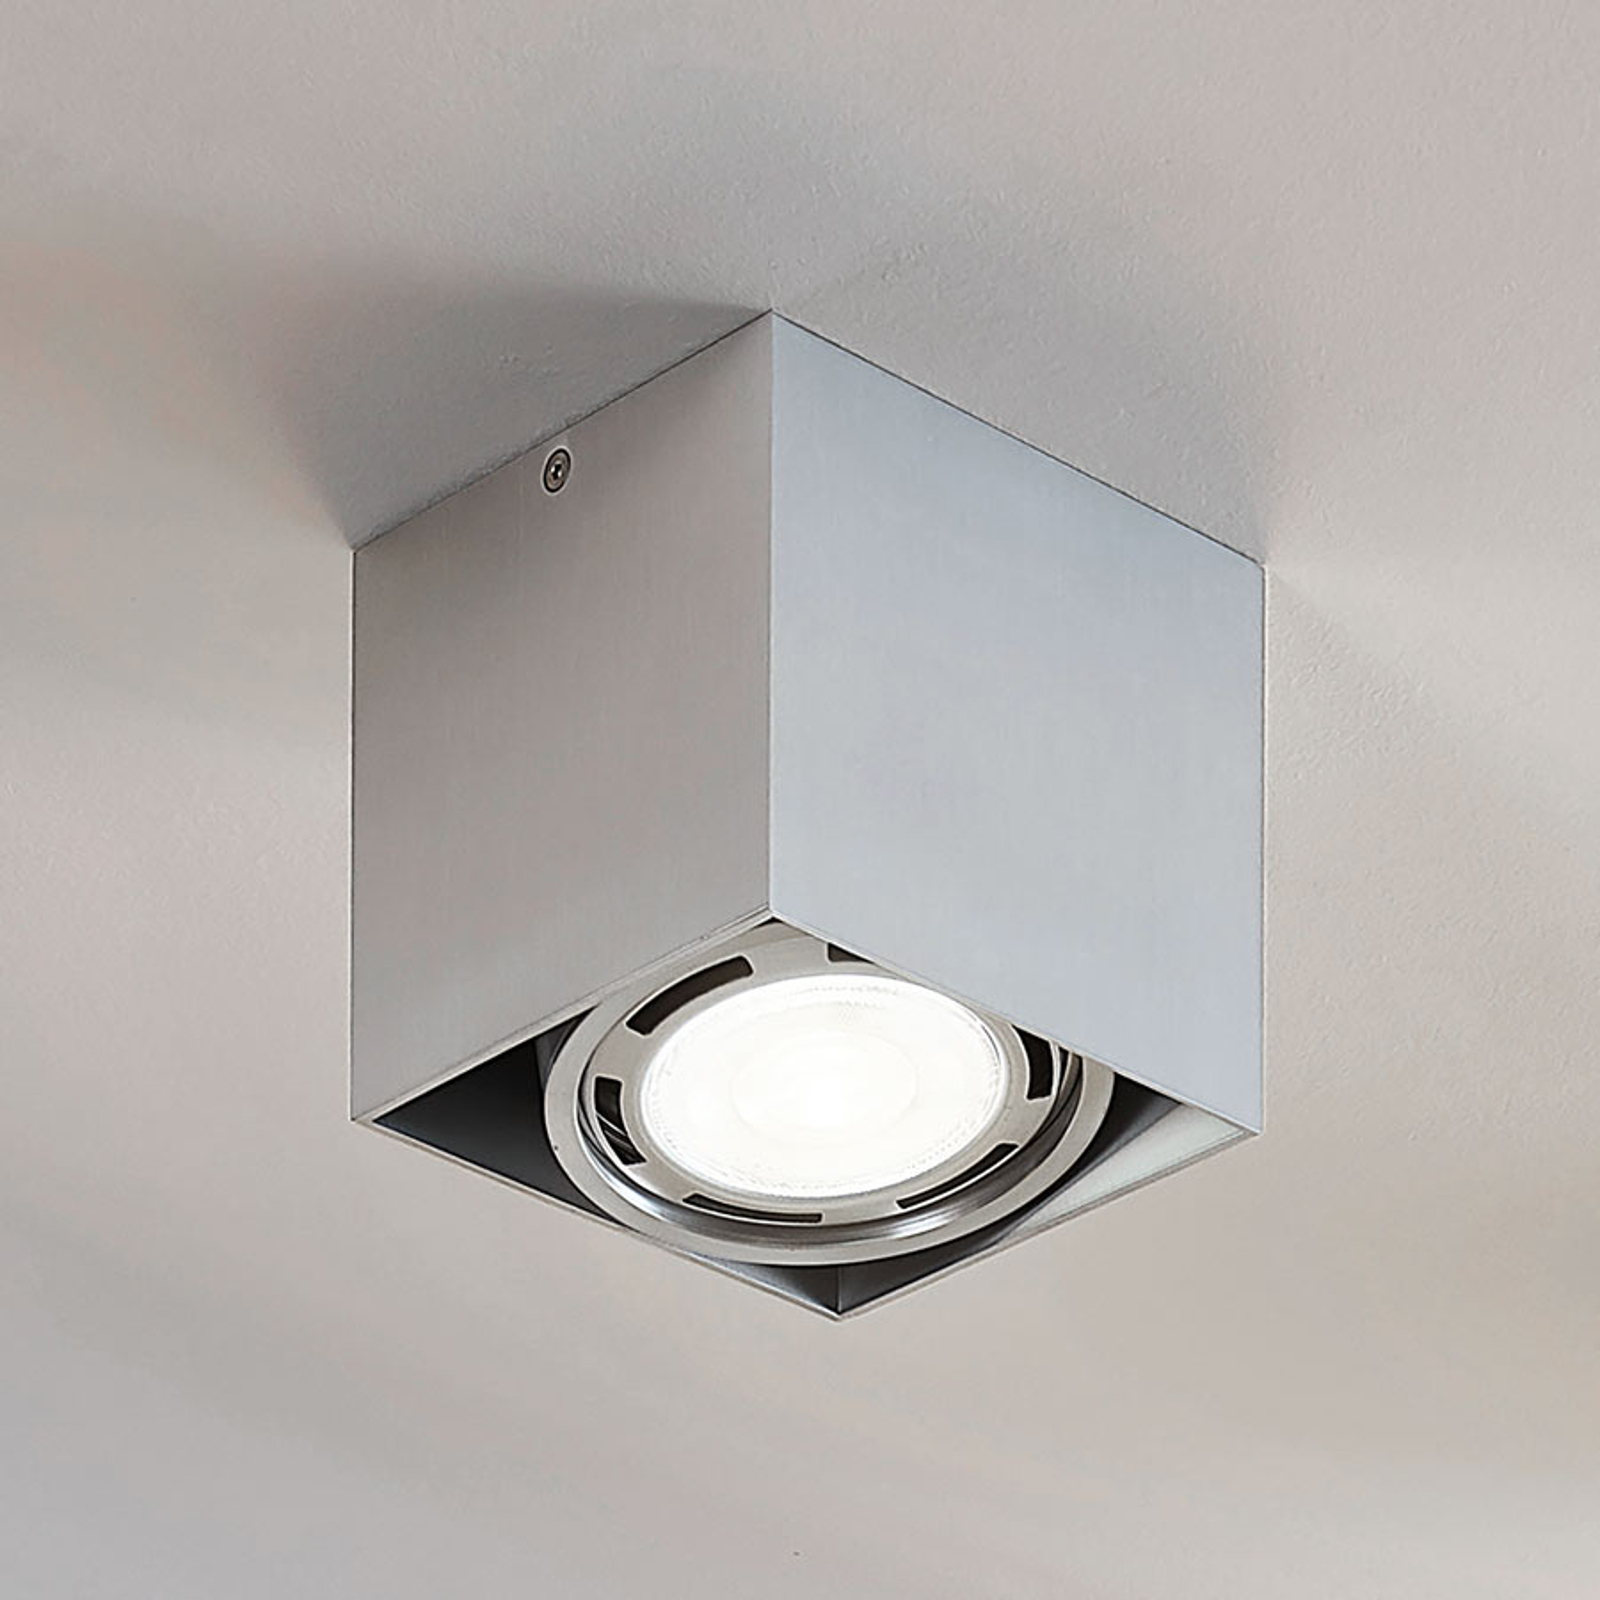 LED-Downlight Rosalie, dimmbar, 1-fl., eckig, alu